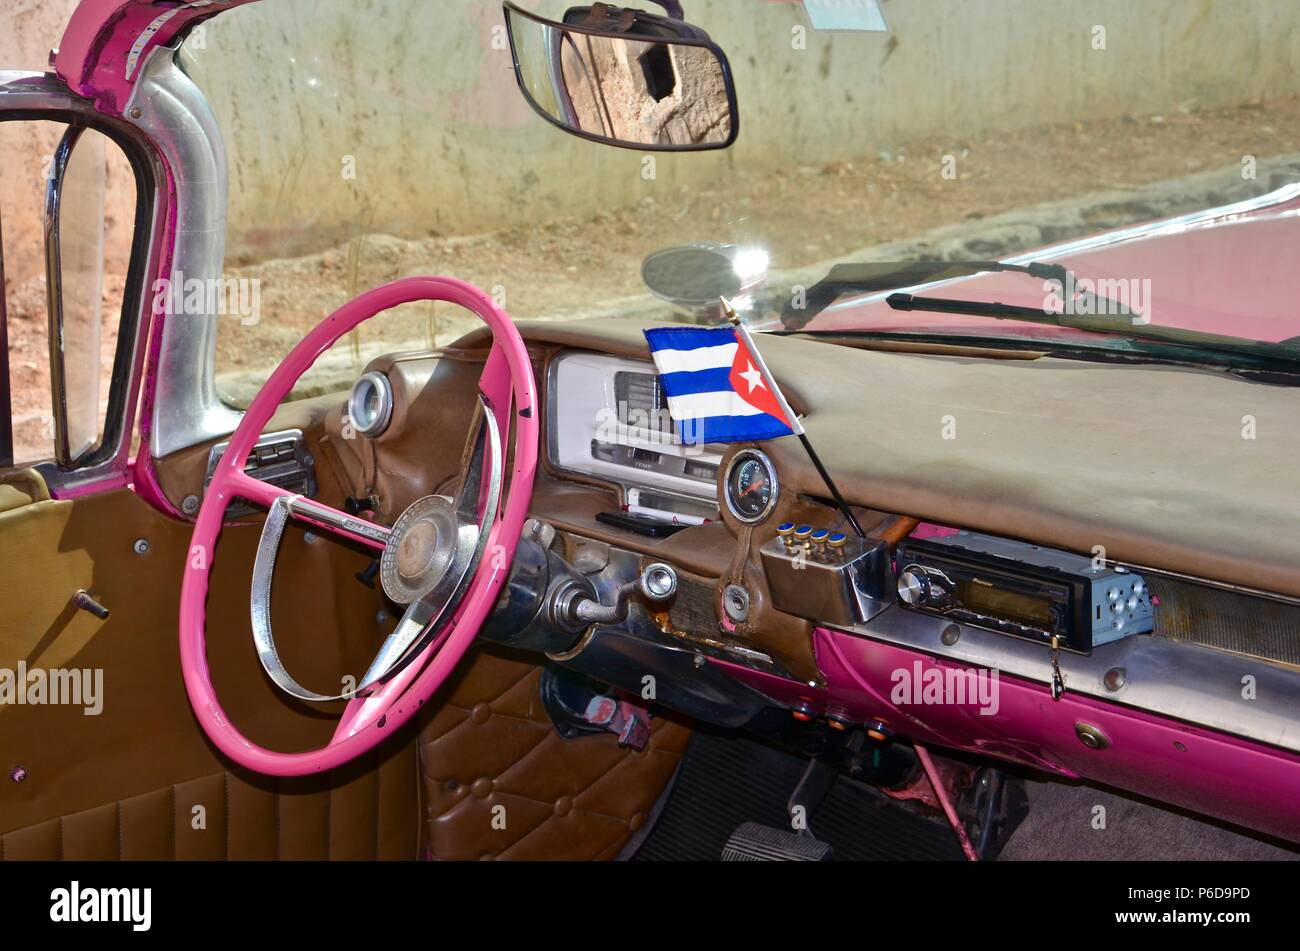 Interieur of a pink vintage car in Havana, Cuba, old, flag, street, traffic, taxi, tourism, caribbean, american, vehicle, mirror, pink steering wheel - Stock Image